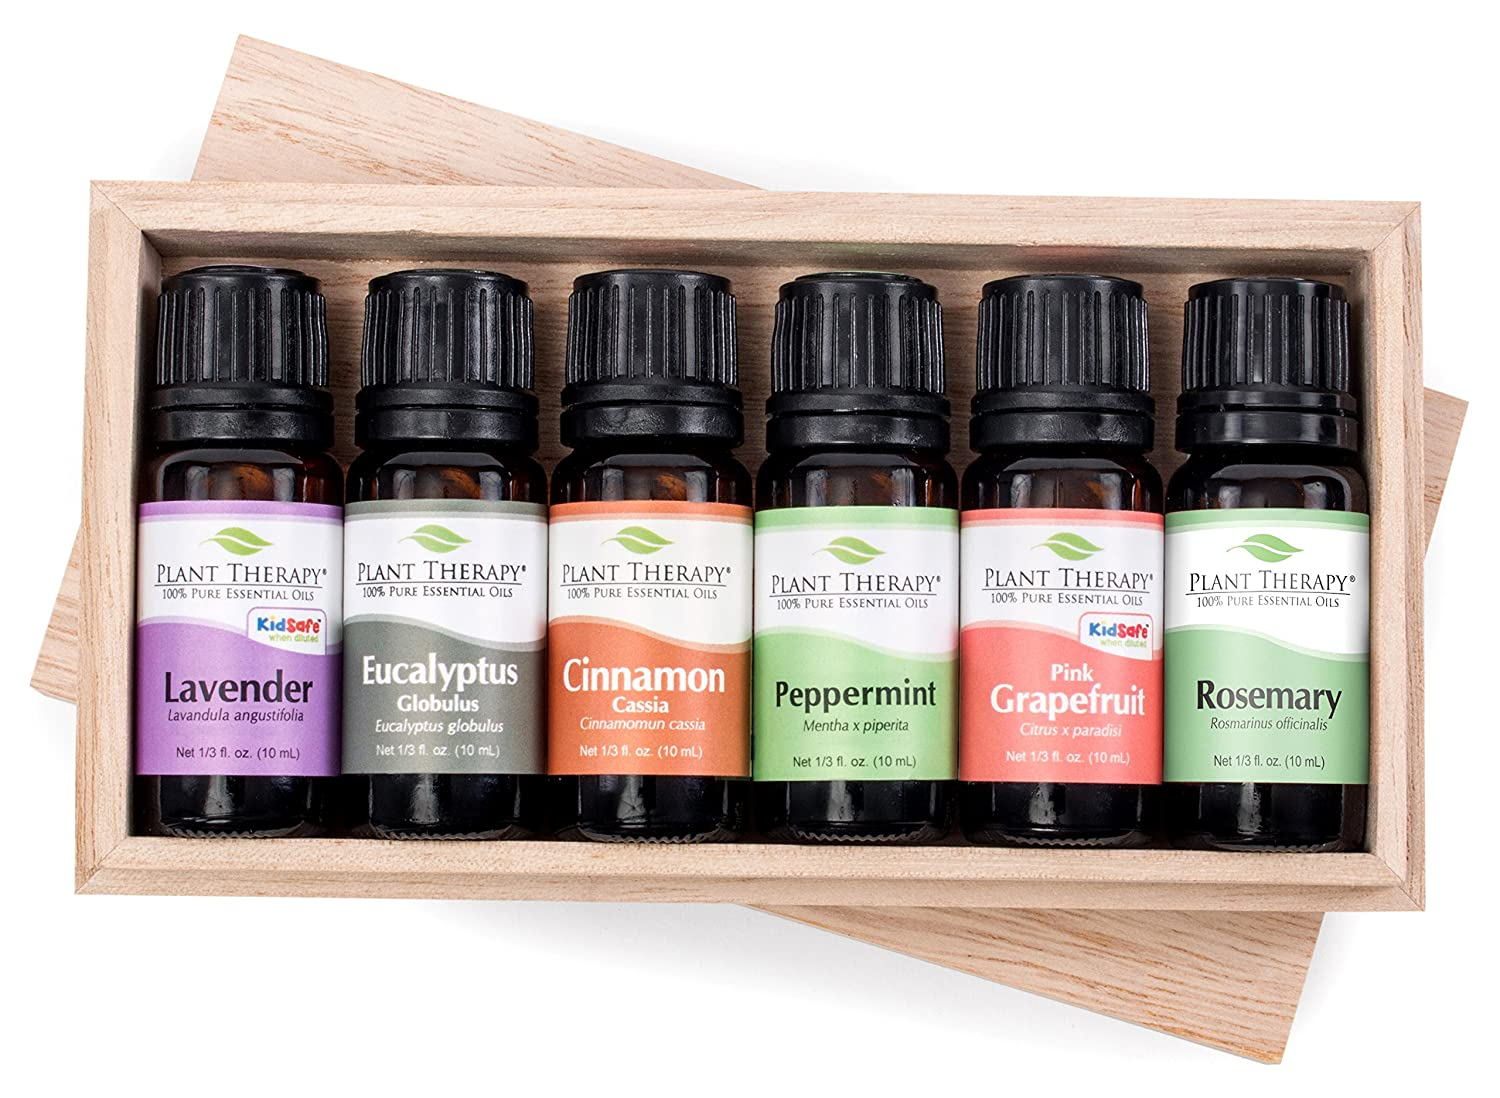 Plant Therapy Essential Oil Sampler Gift Set #2 (Lavender, Eucalyptus, Cinnamon Cassia, Peppermint, Rosemary and Grapefruit; 10 mL each) Plant Therapy Essential Oils